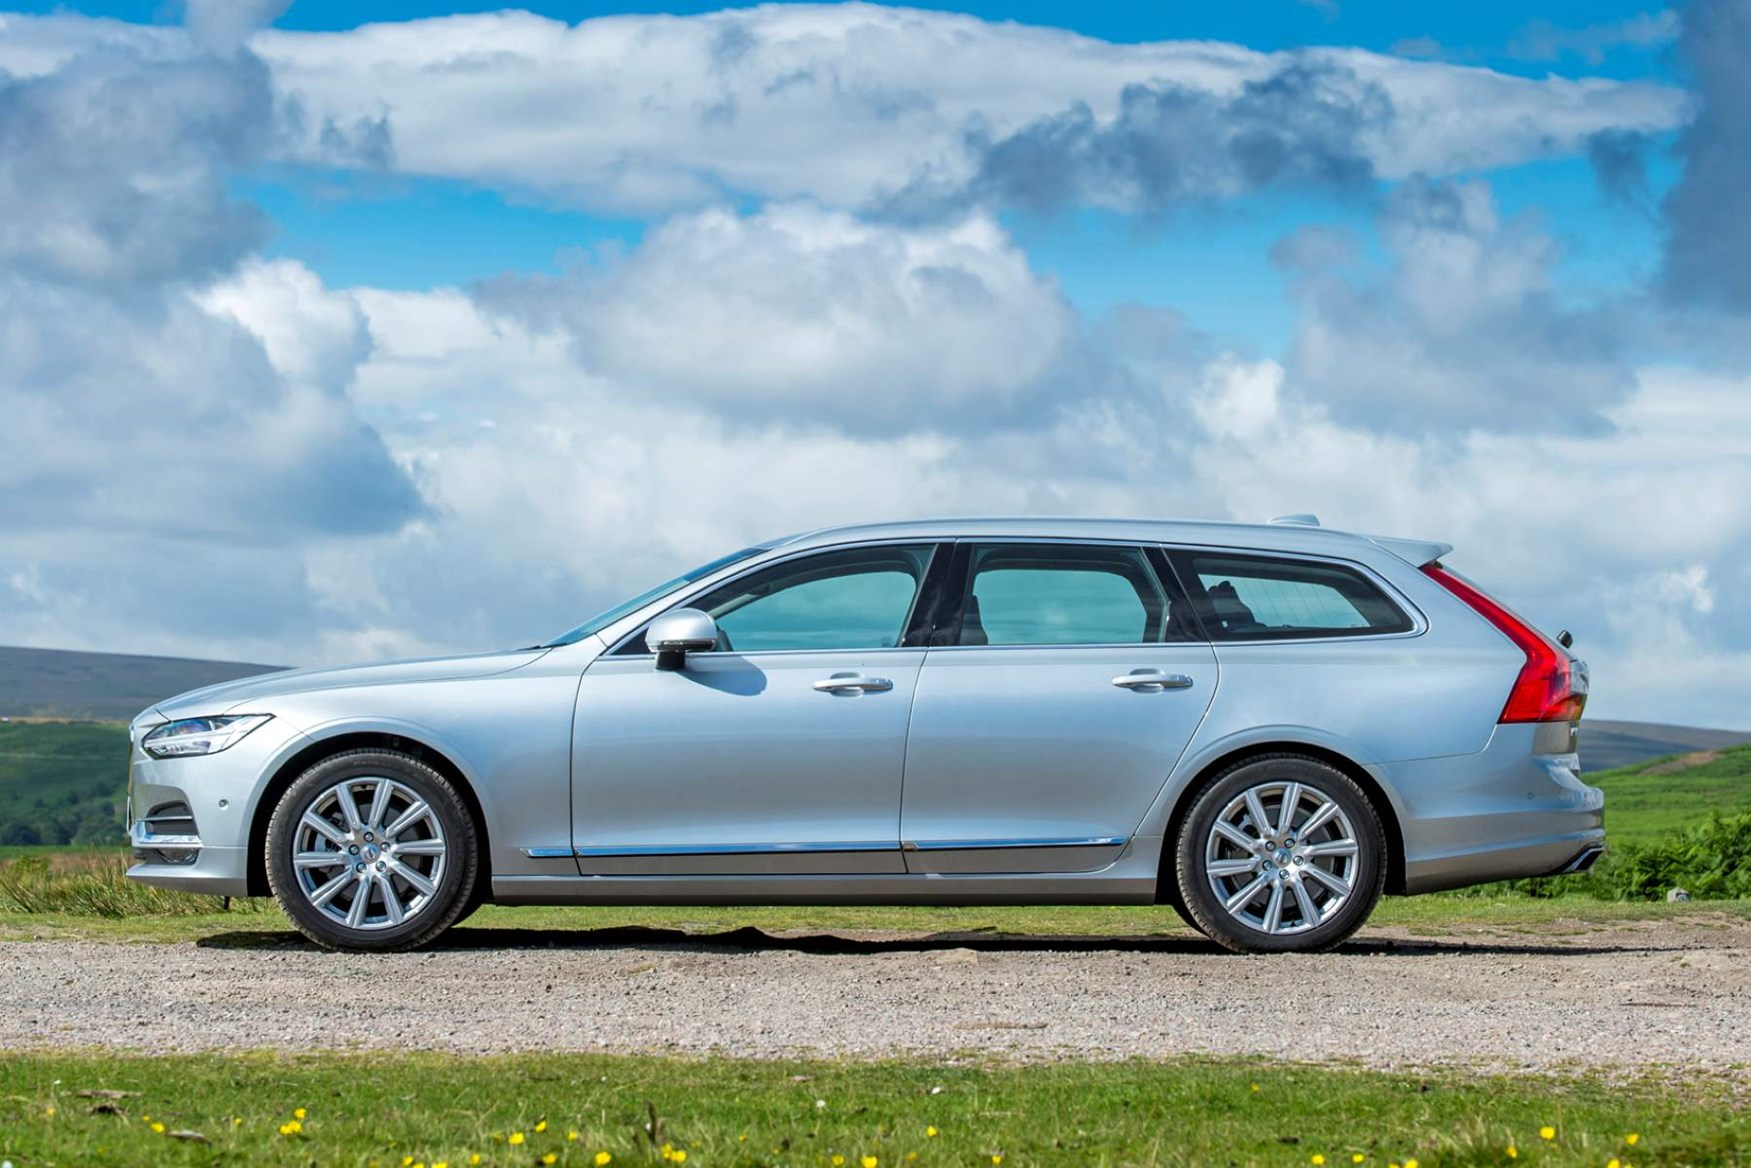 Silver 2016 Volvo V90 side elevation